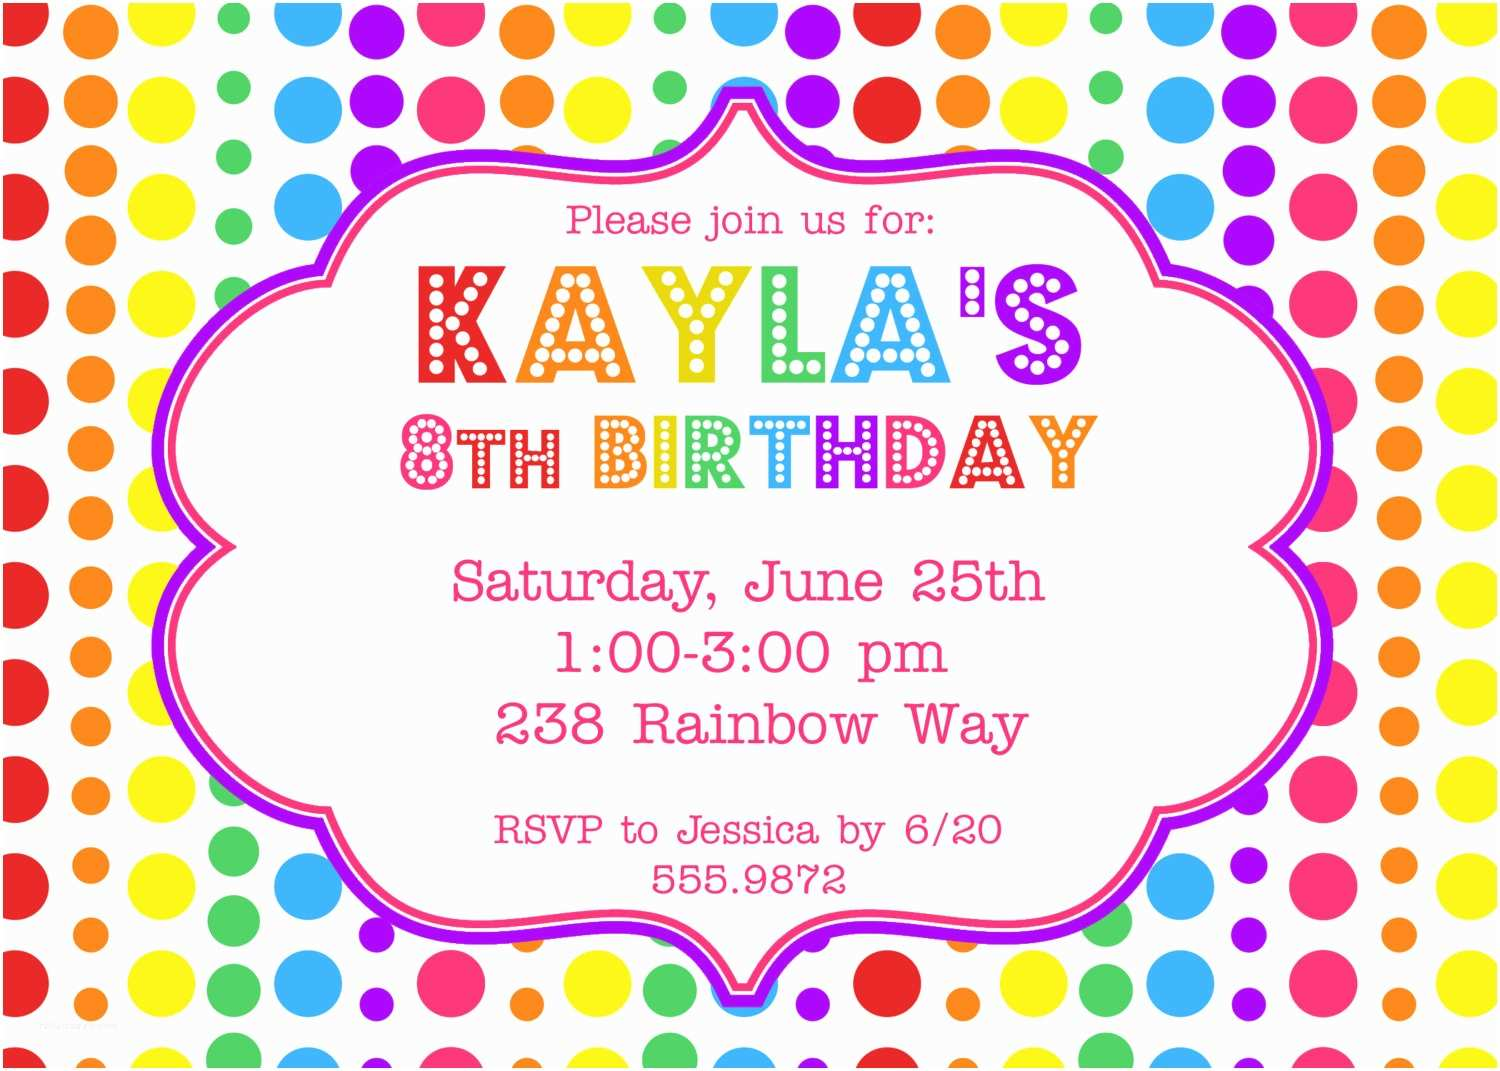 Glamorous Party Invitation Birthday Party Invitations Line